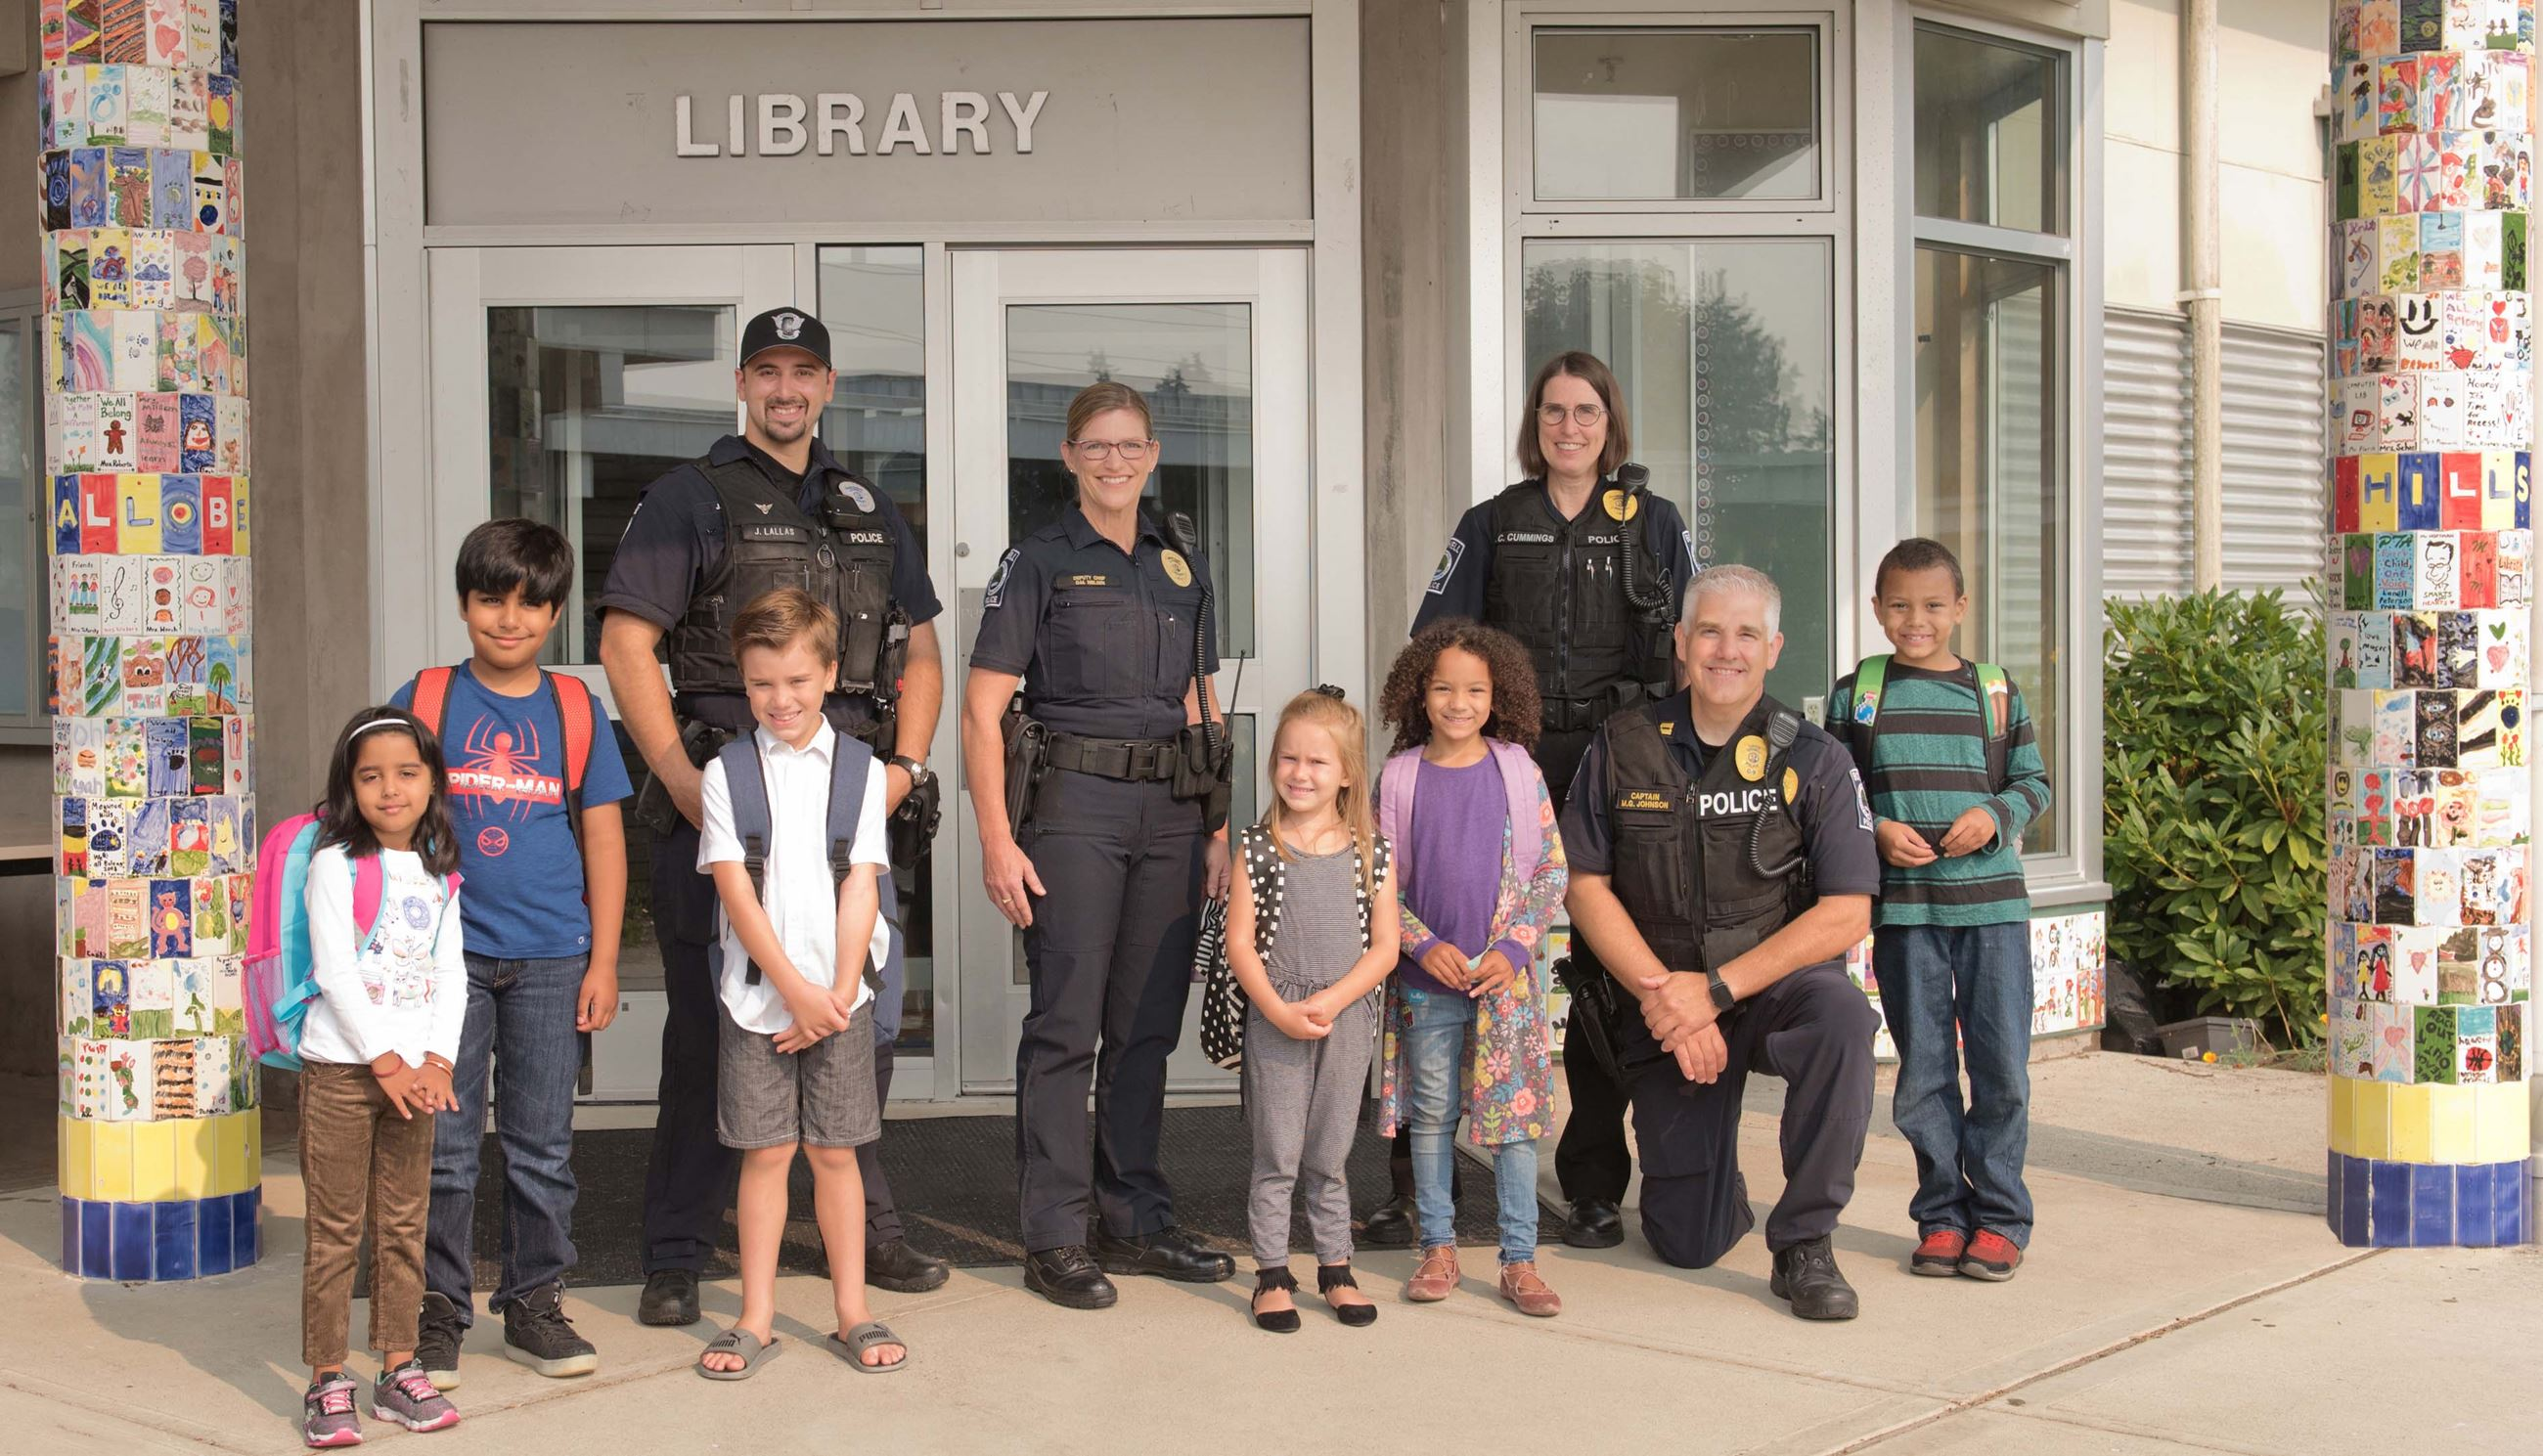 Police with kids at school library